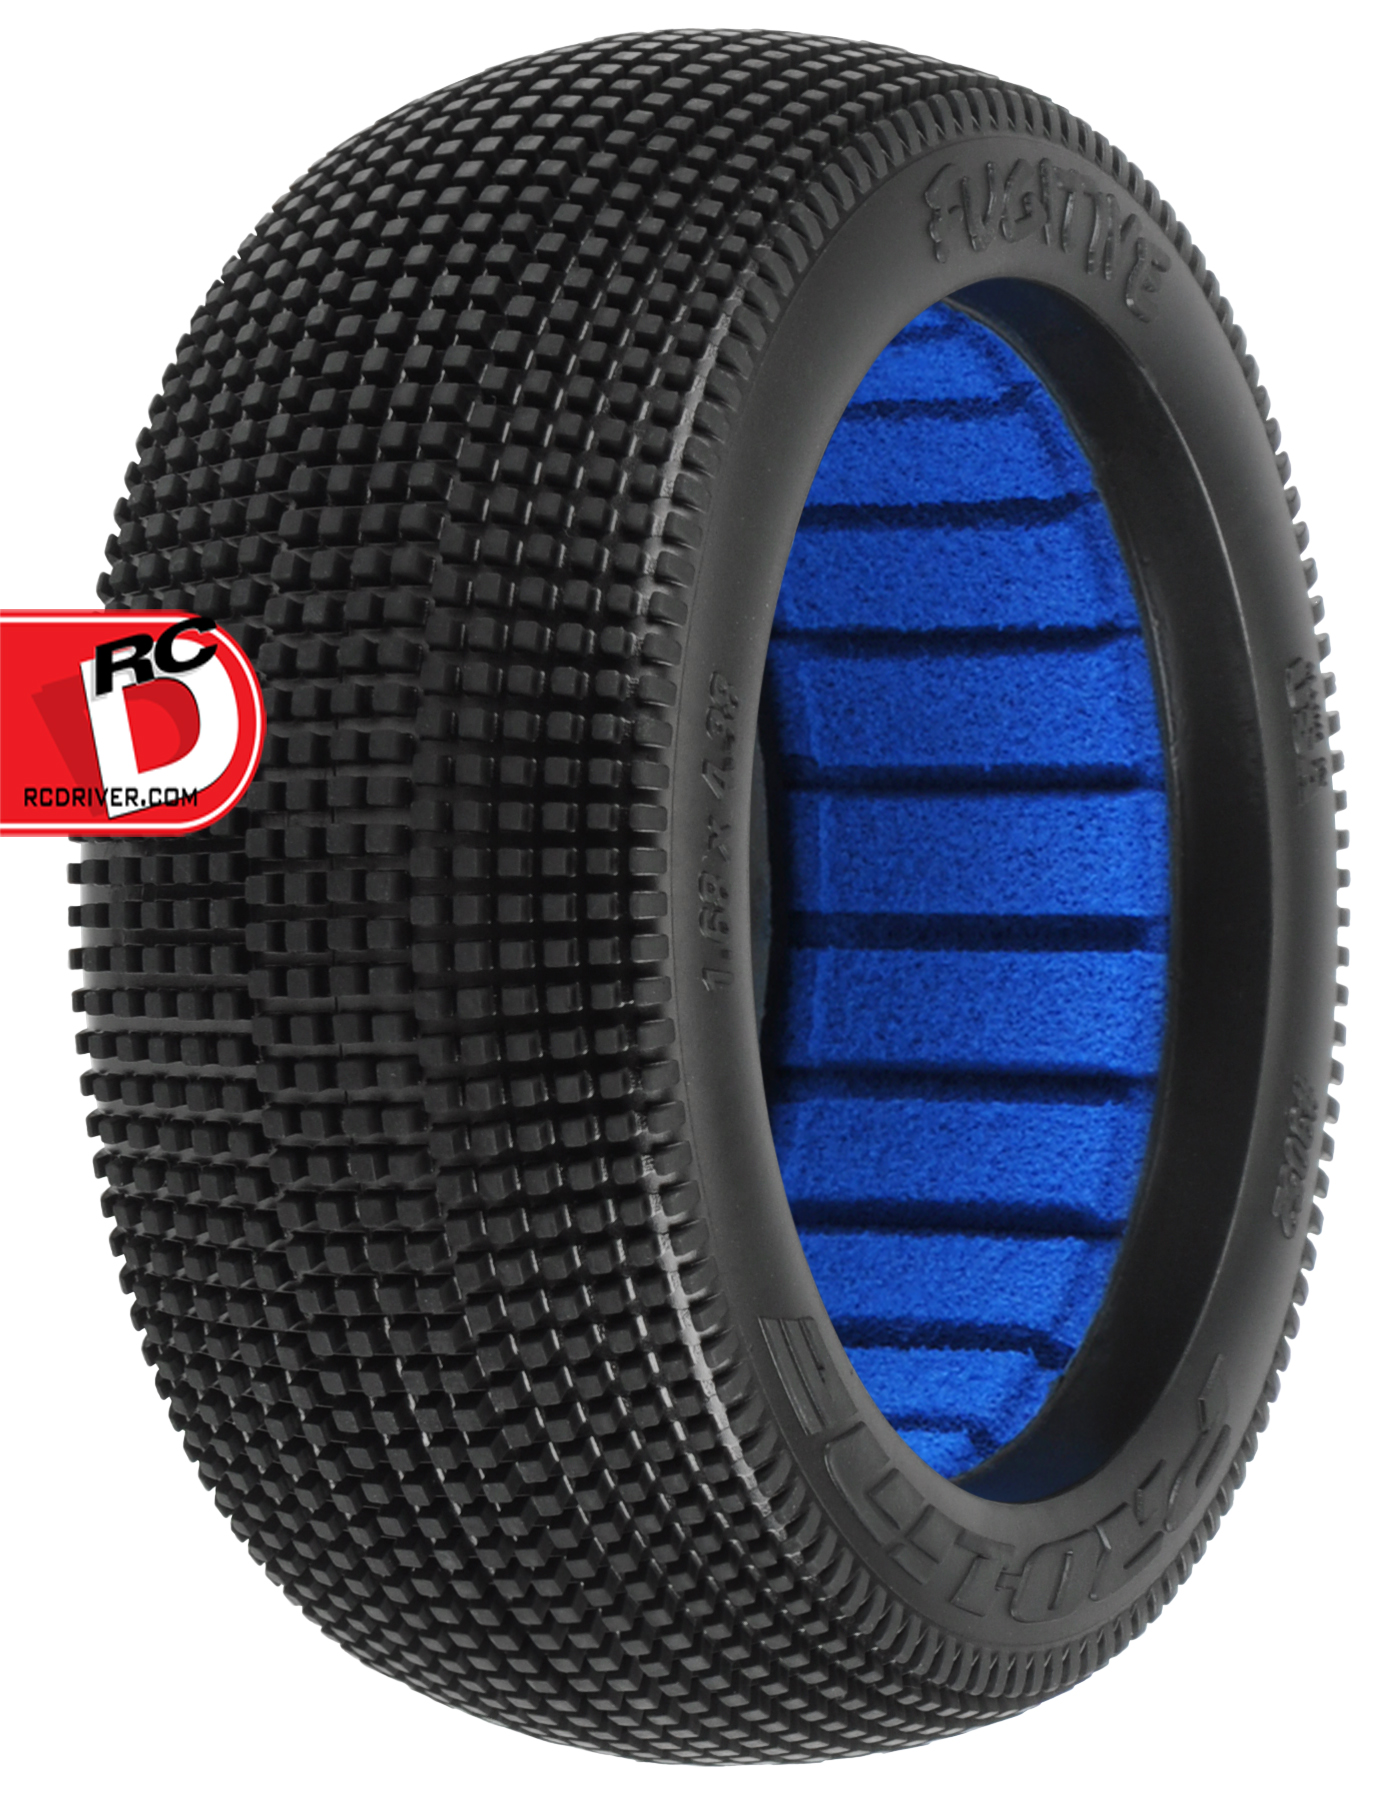 Pro-Line - Fugitive 18 Off Road Buggy Tires copy